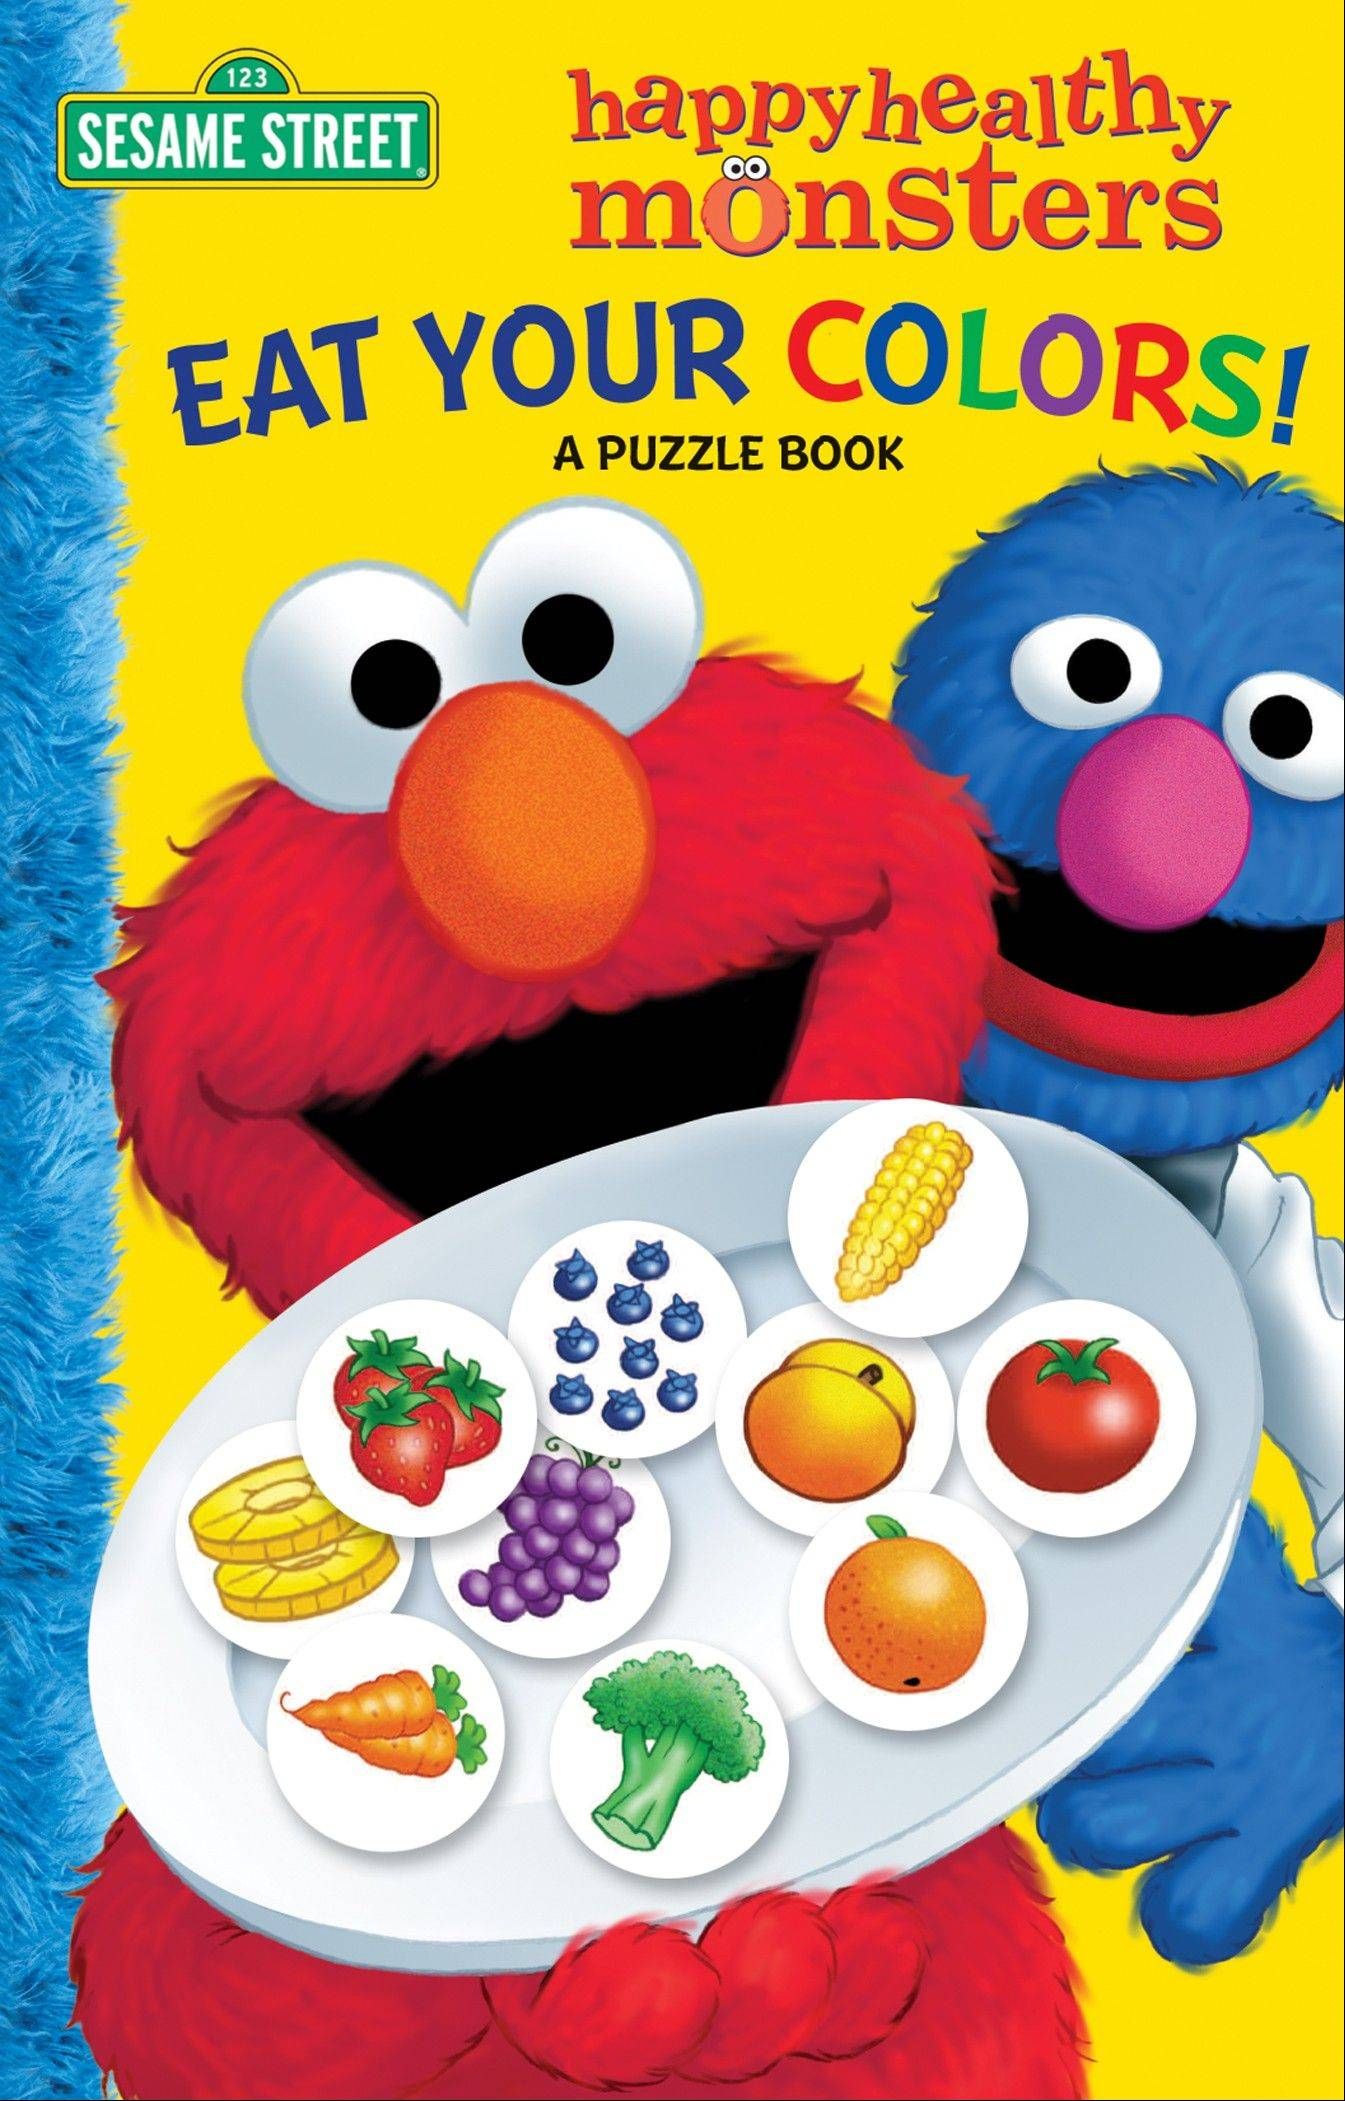 �Eat Your Colors! A Puzzle Book� by Sarah Albee and Joe Matthieu.